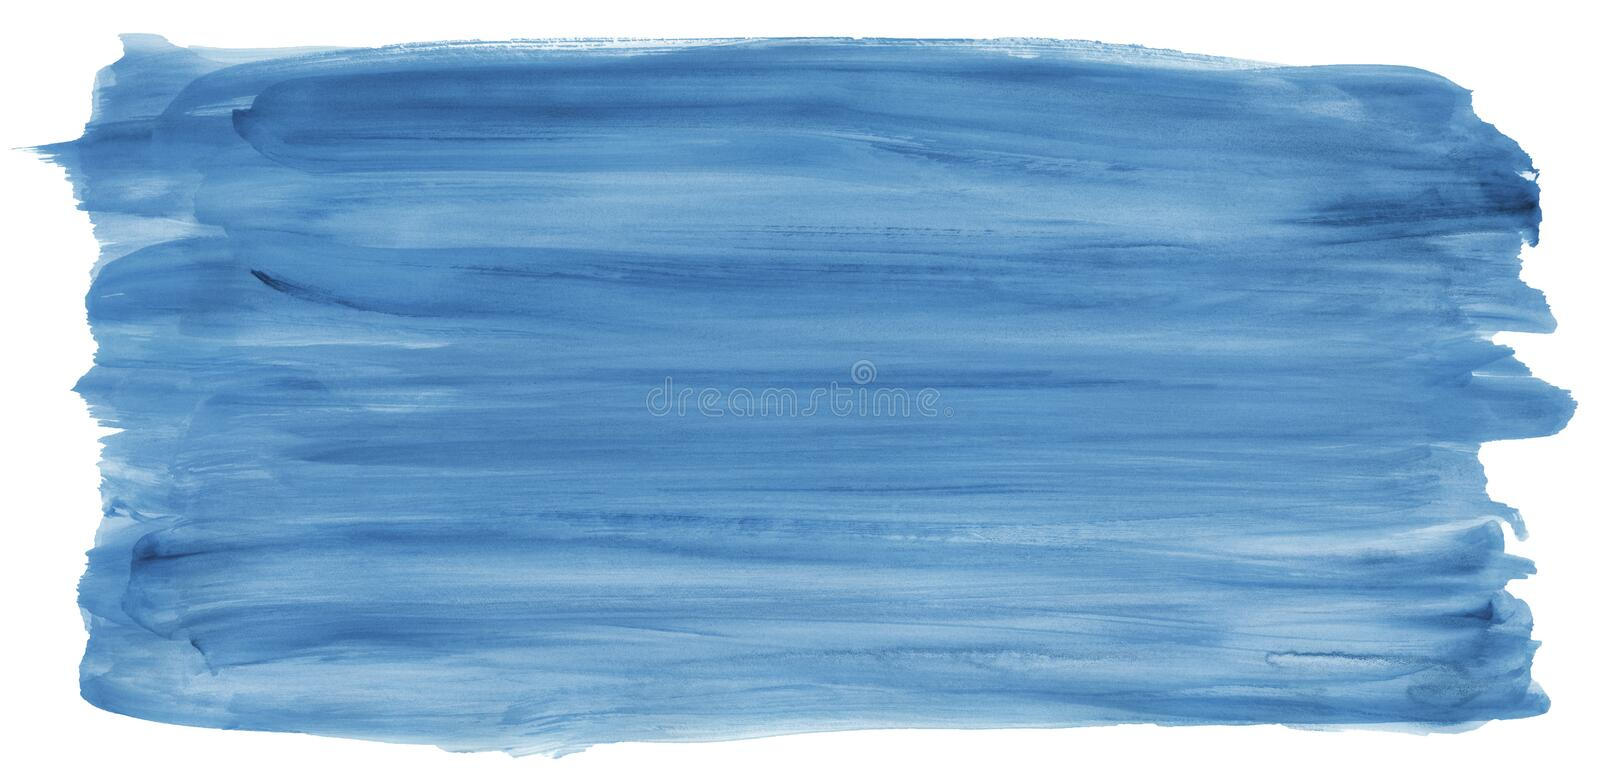 Blue watercolor strips isolated on white texture paper. illustration for design cover, label. Wedding illustration stock photo